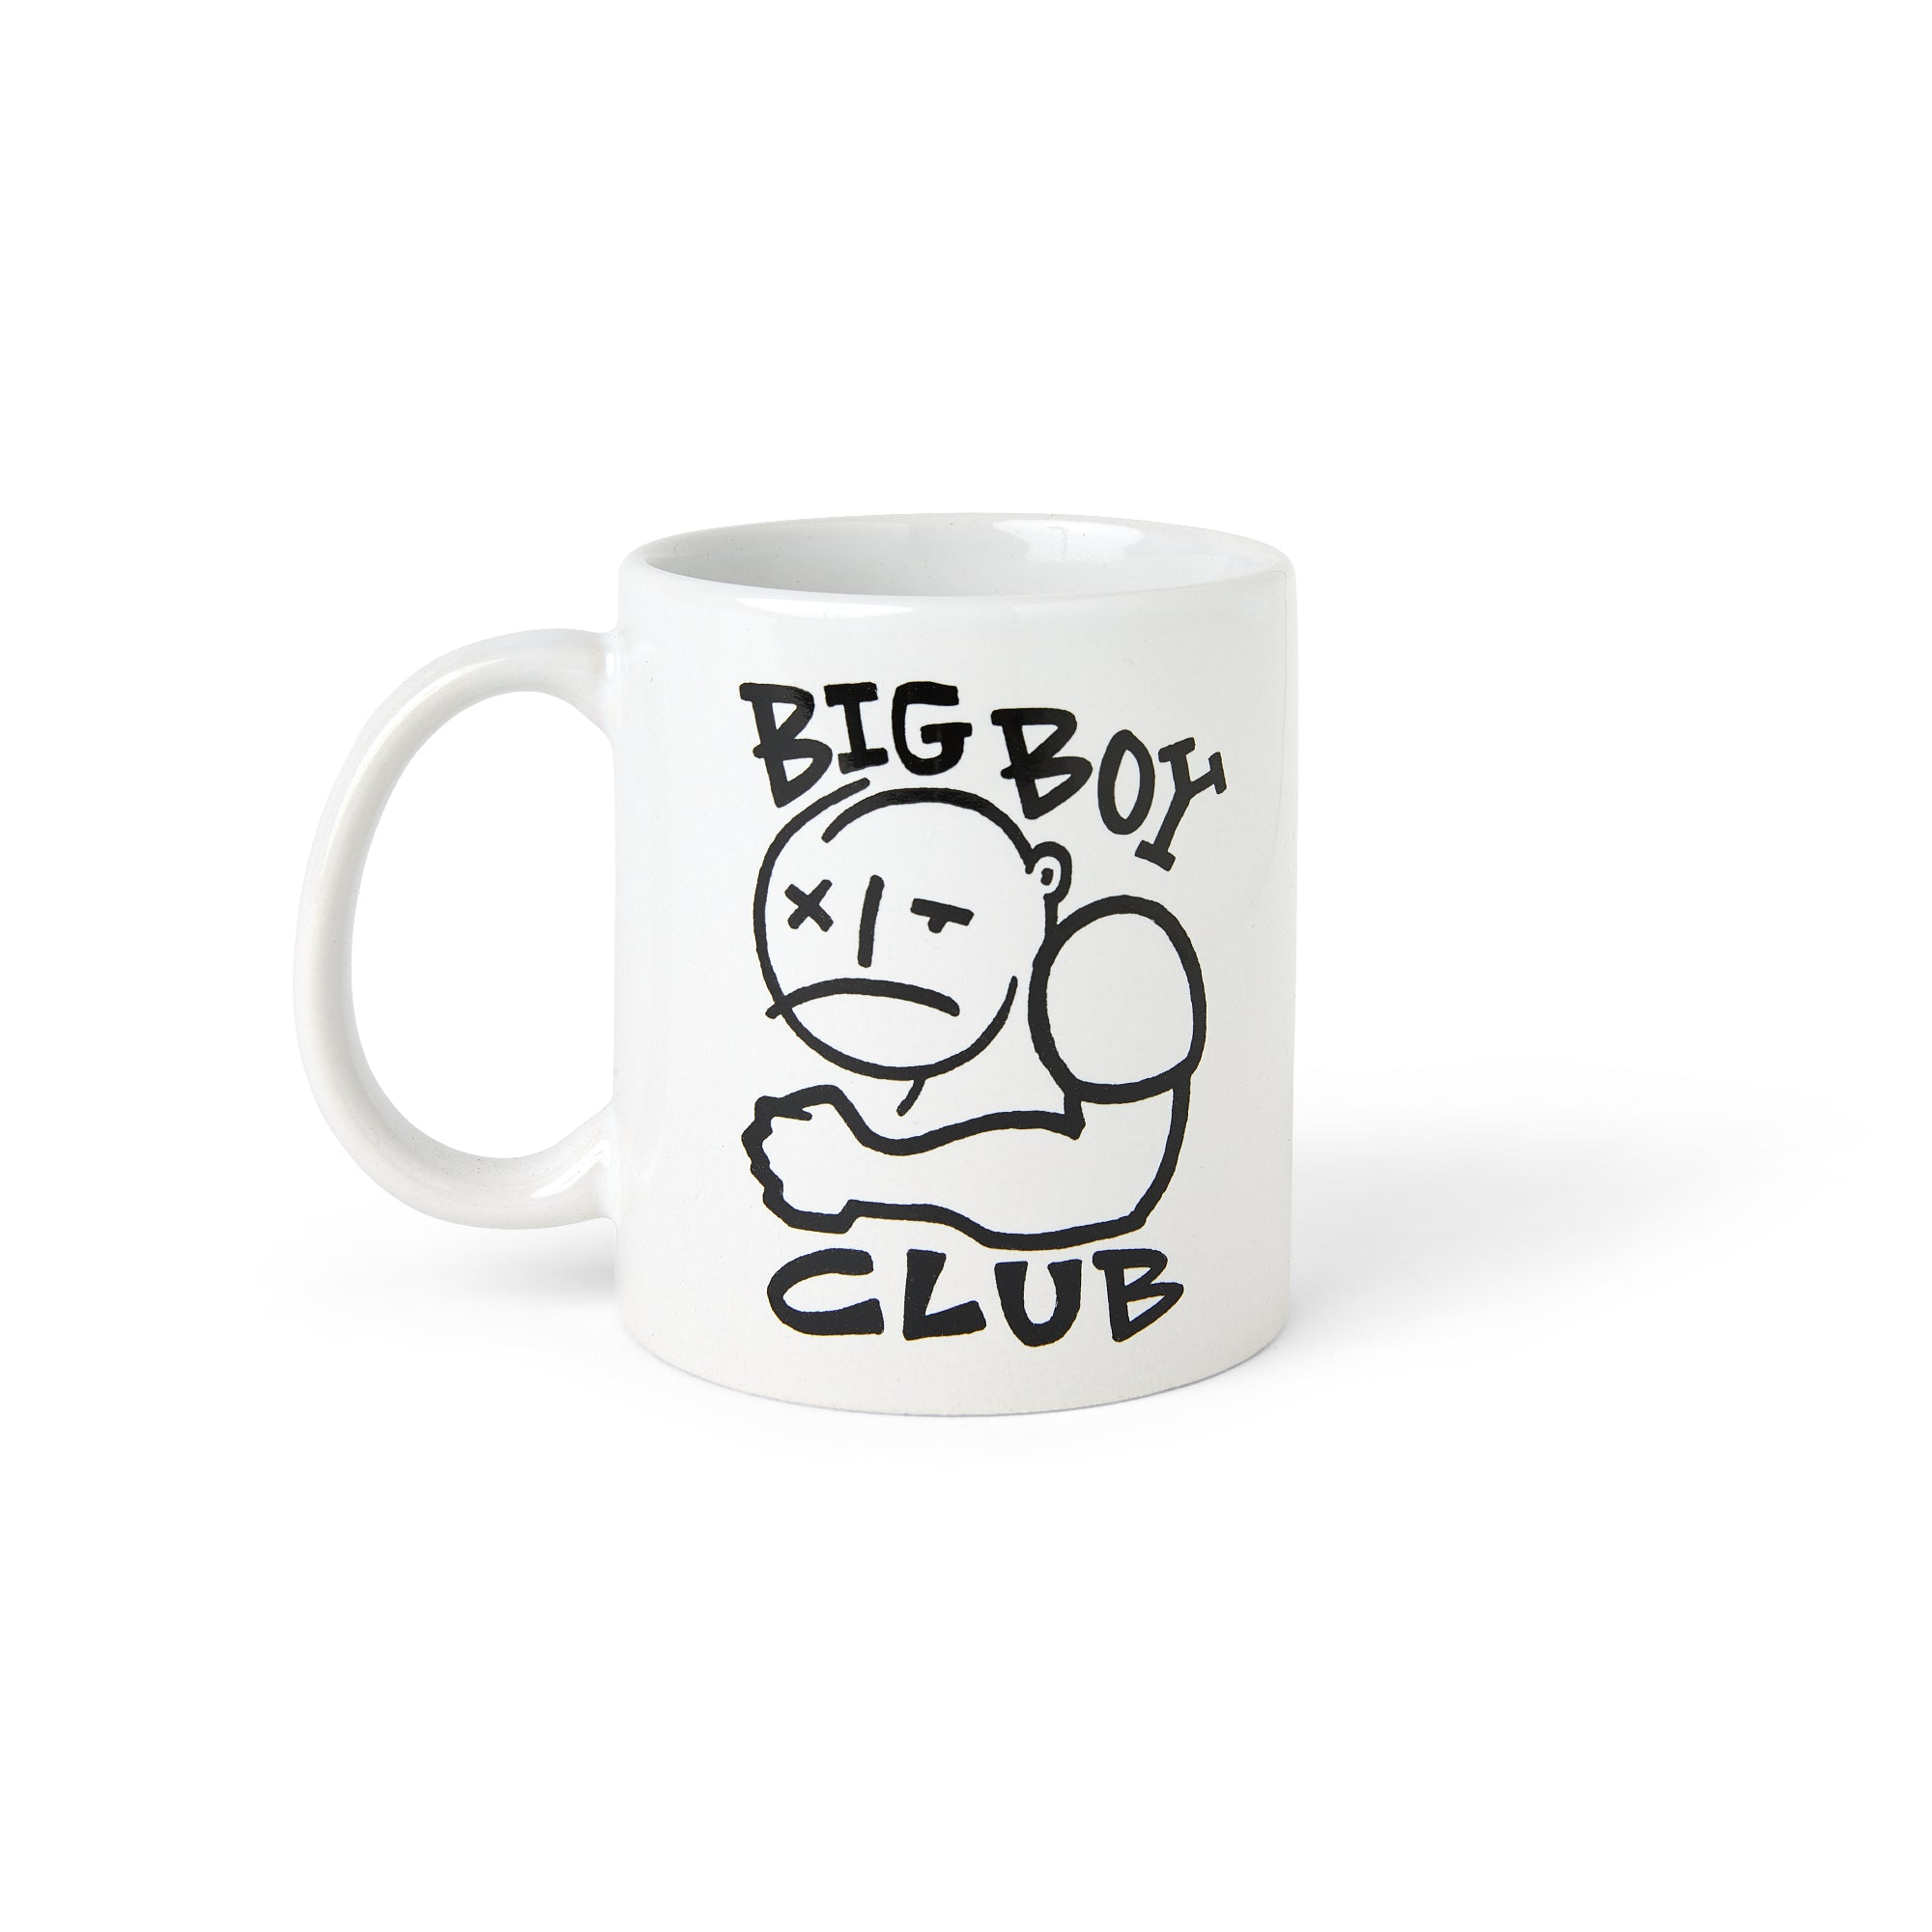 POLAR - Big Boy Club Mug